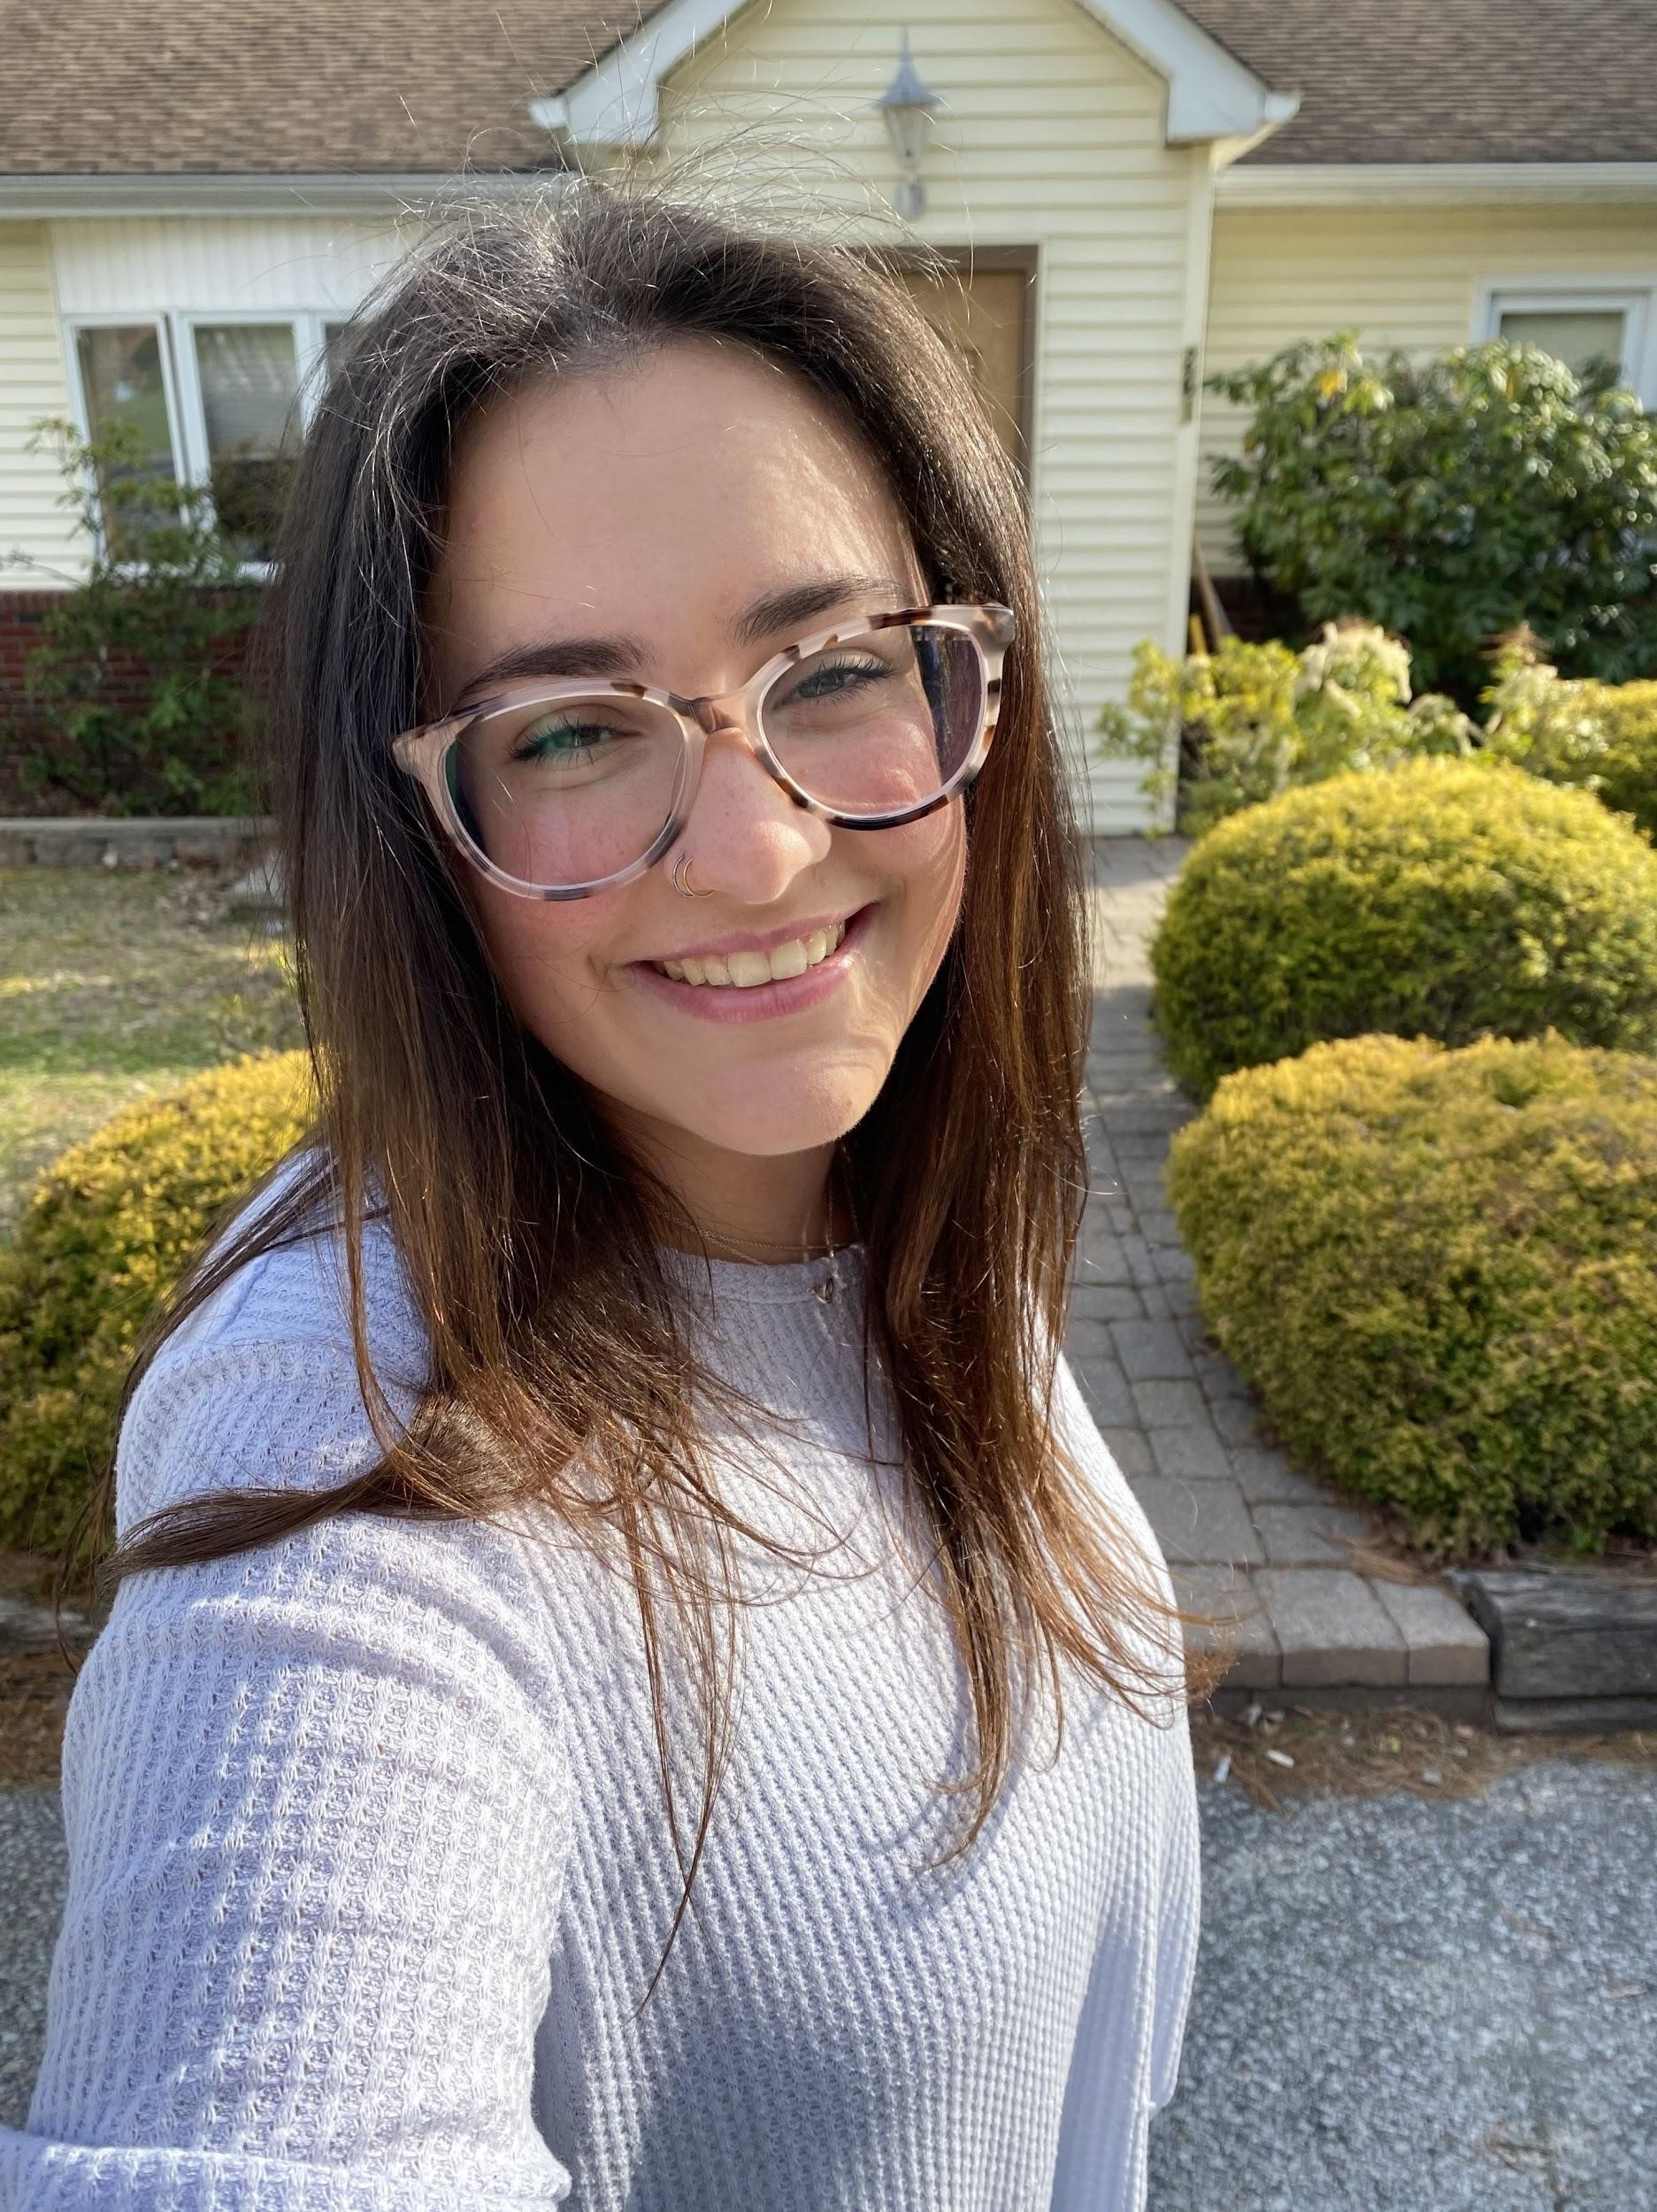 Athena Skirianos, Vice President for Campus Connection